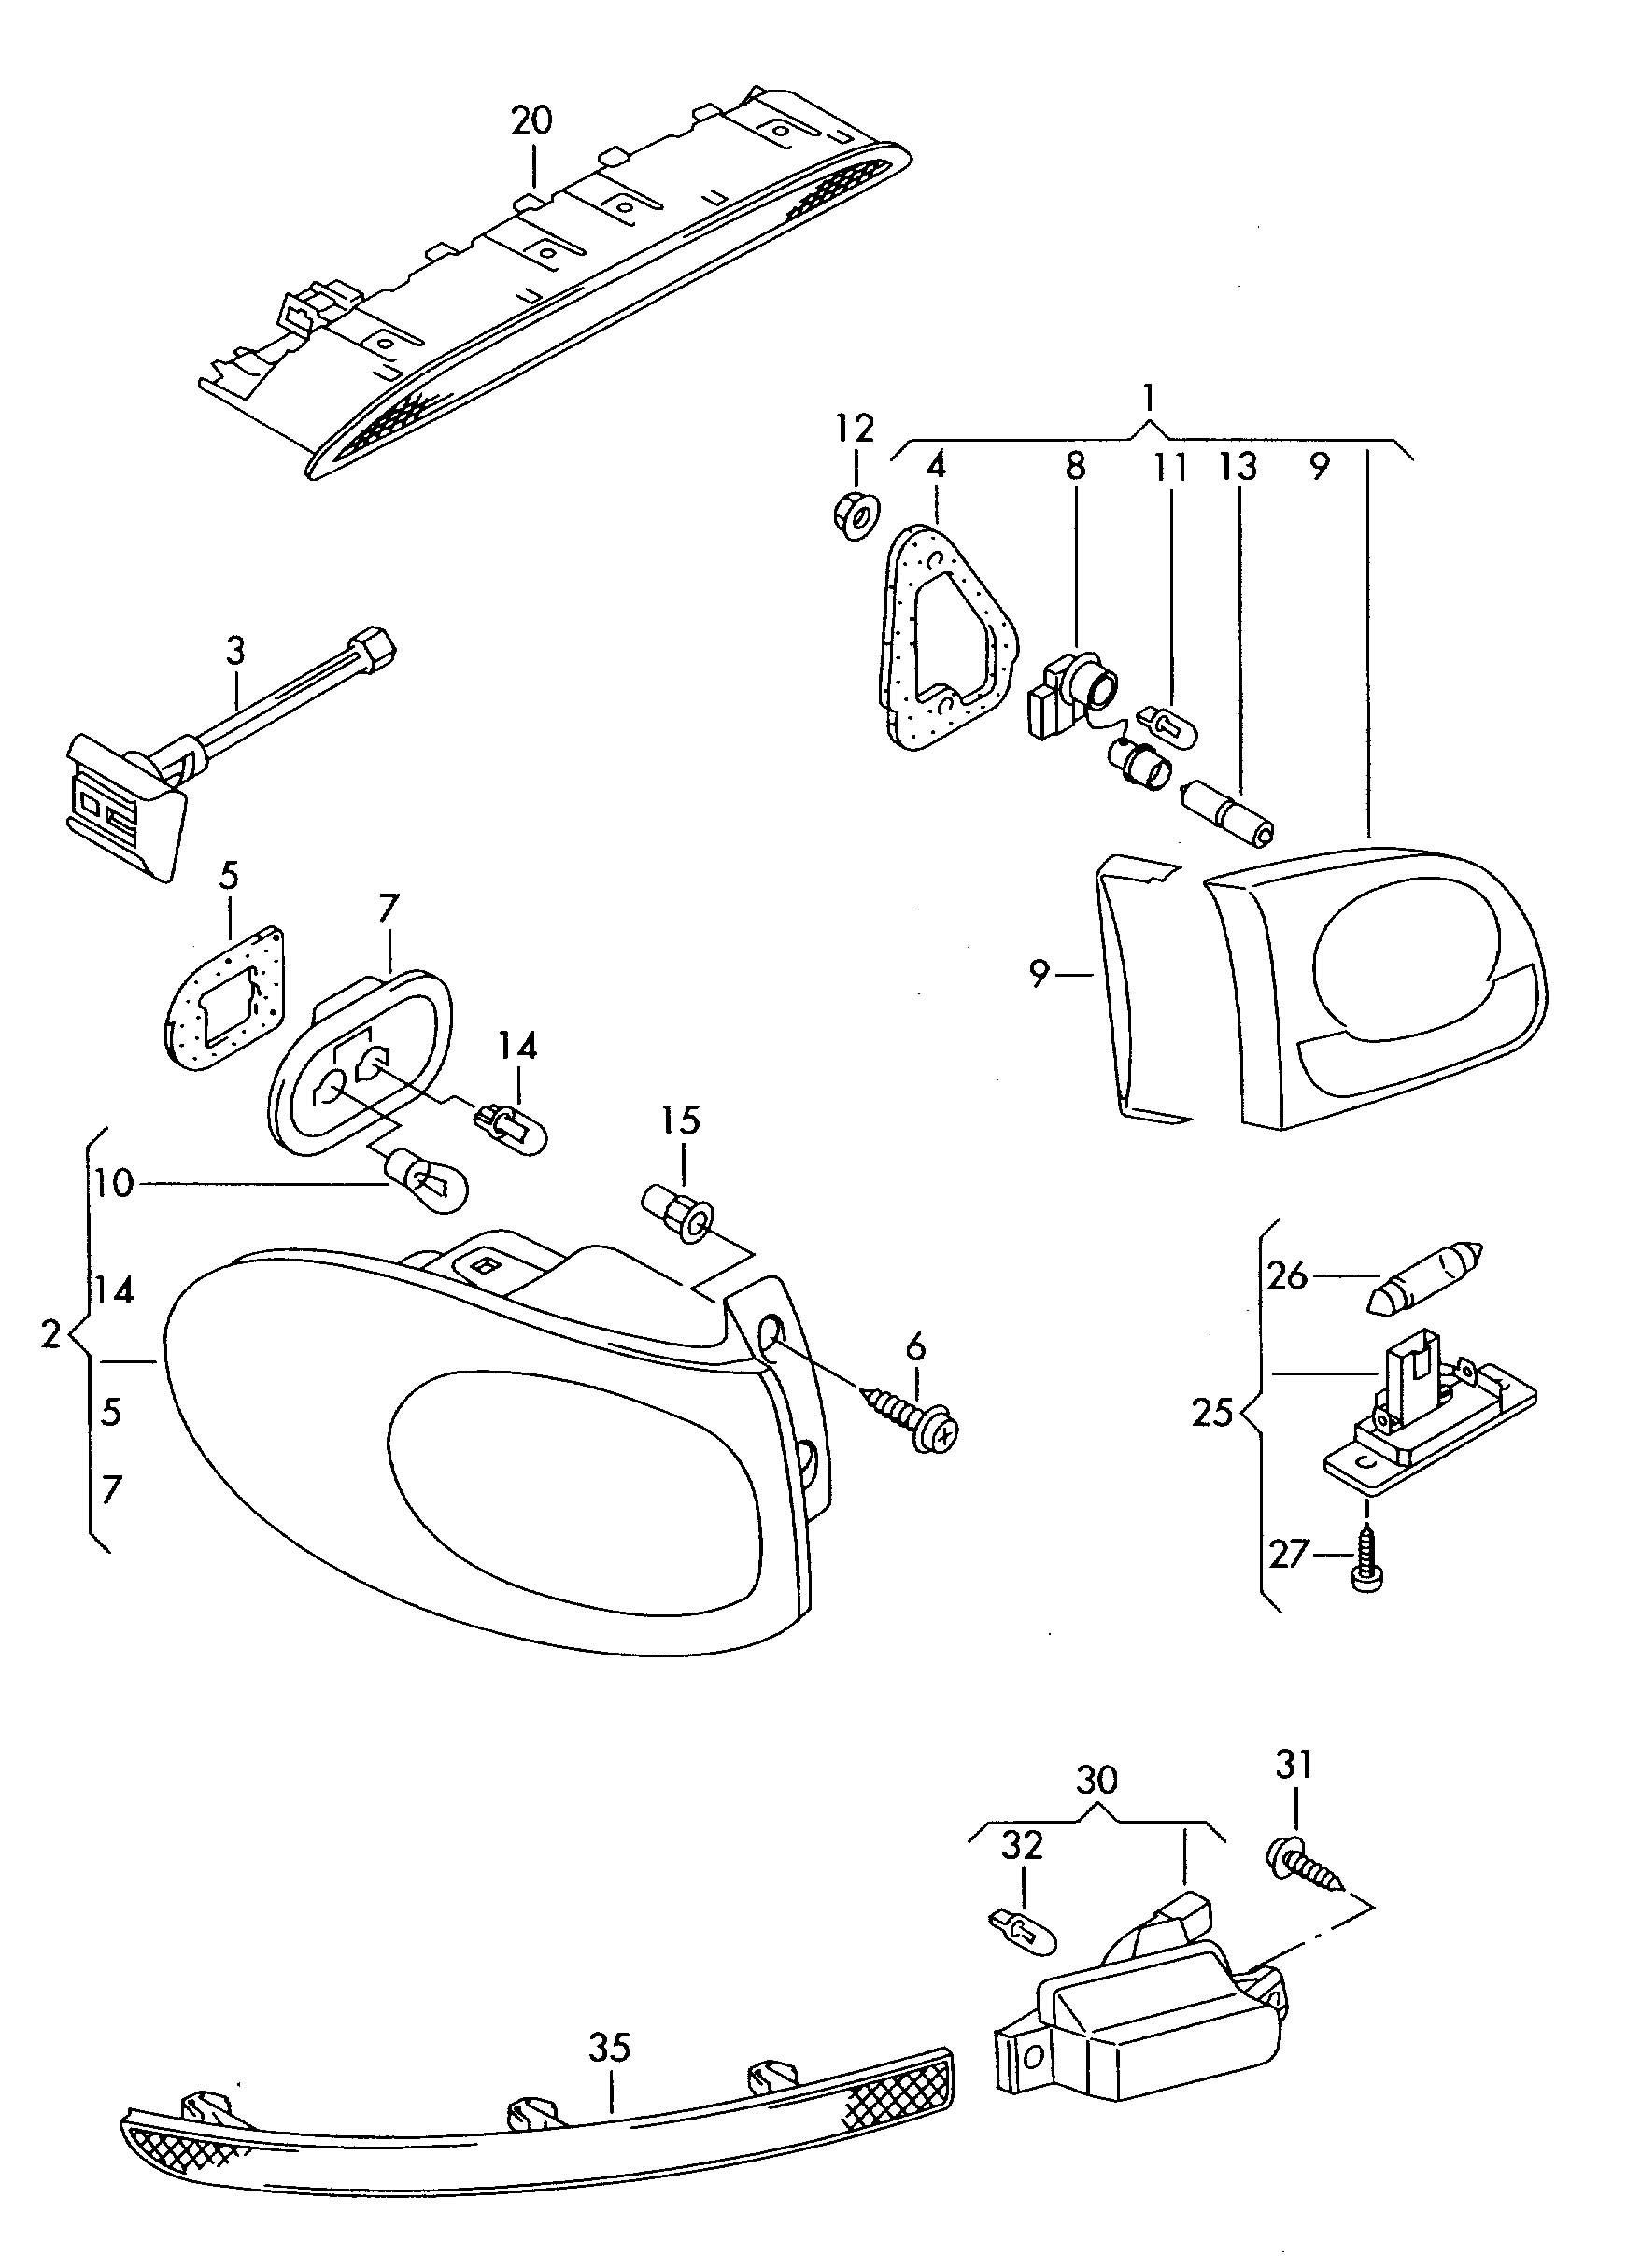 Volkswagen Tiguan Mounting For Lamp Socket Mounting For